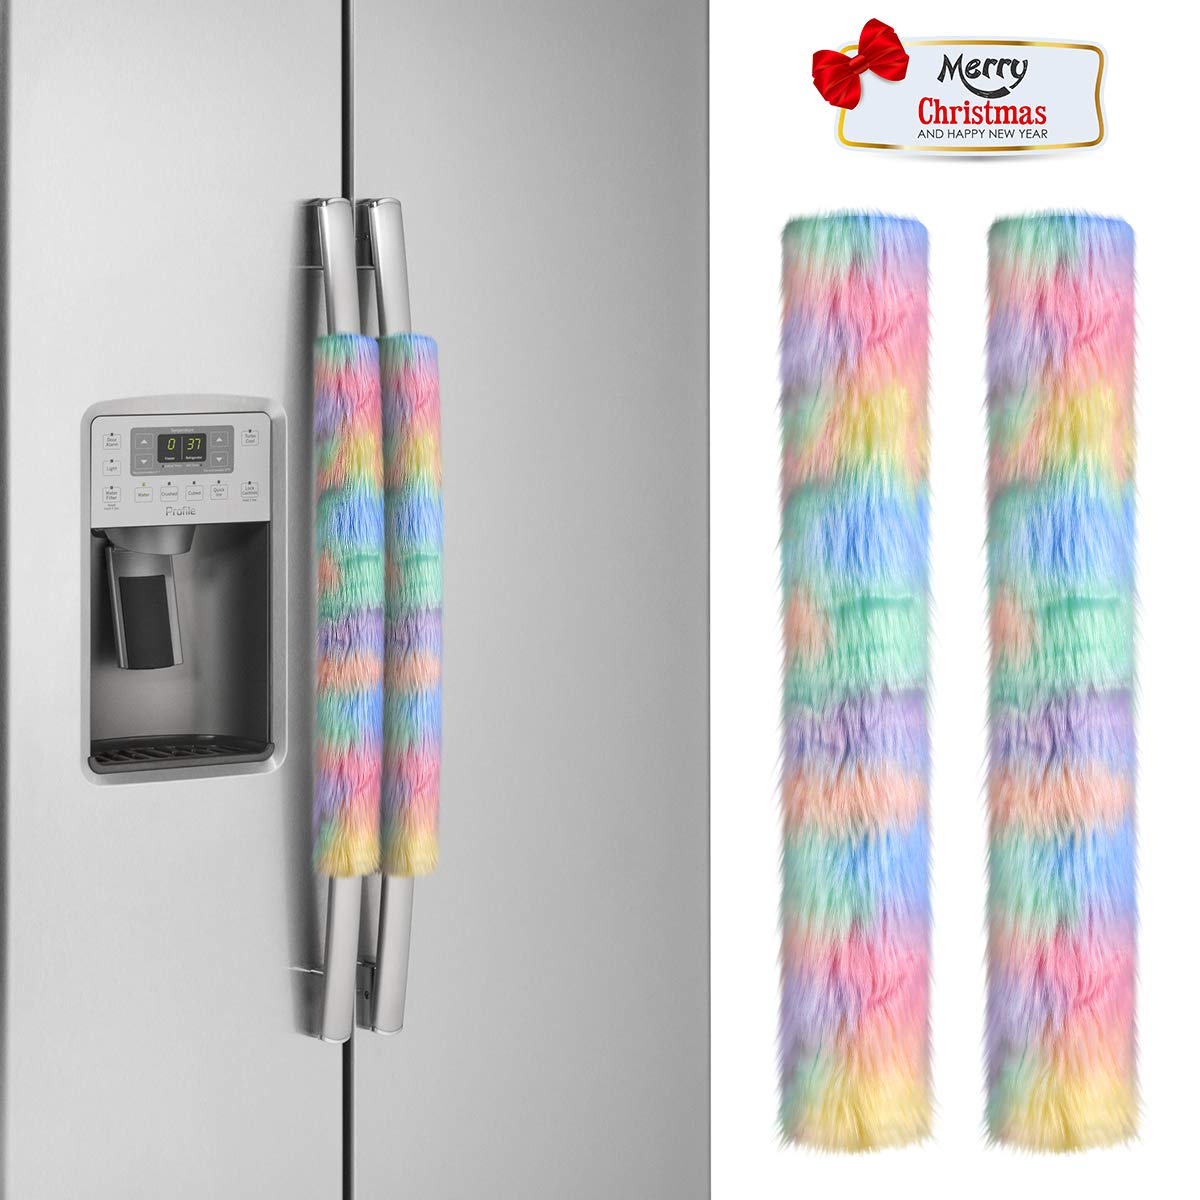 """yuboo 2 Pcs Christmas Rainbow Refrigerator Door Handle Covers, Kitchen Appliance Handle Covers Christmas Decoration for Refrigerator Microwave Oven Dishwasher 15.7""""x 4.7"""""""